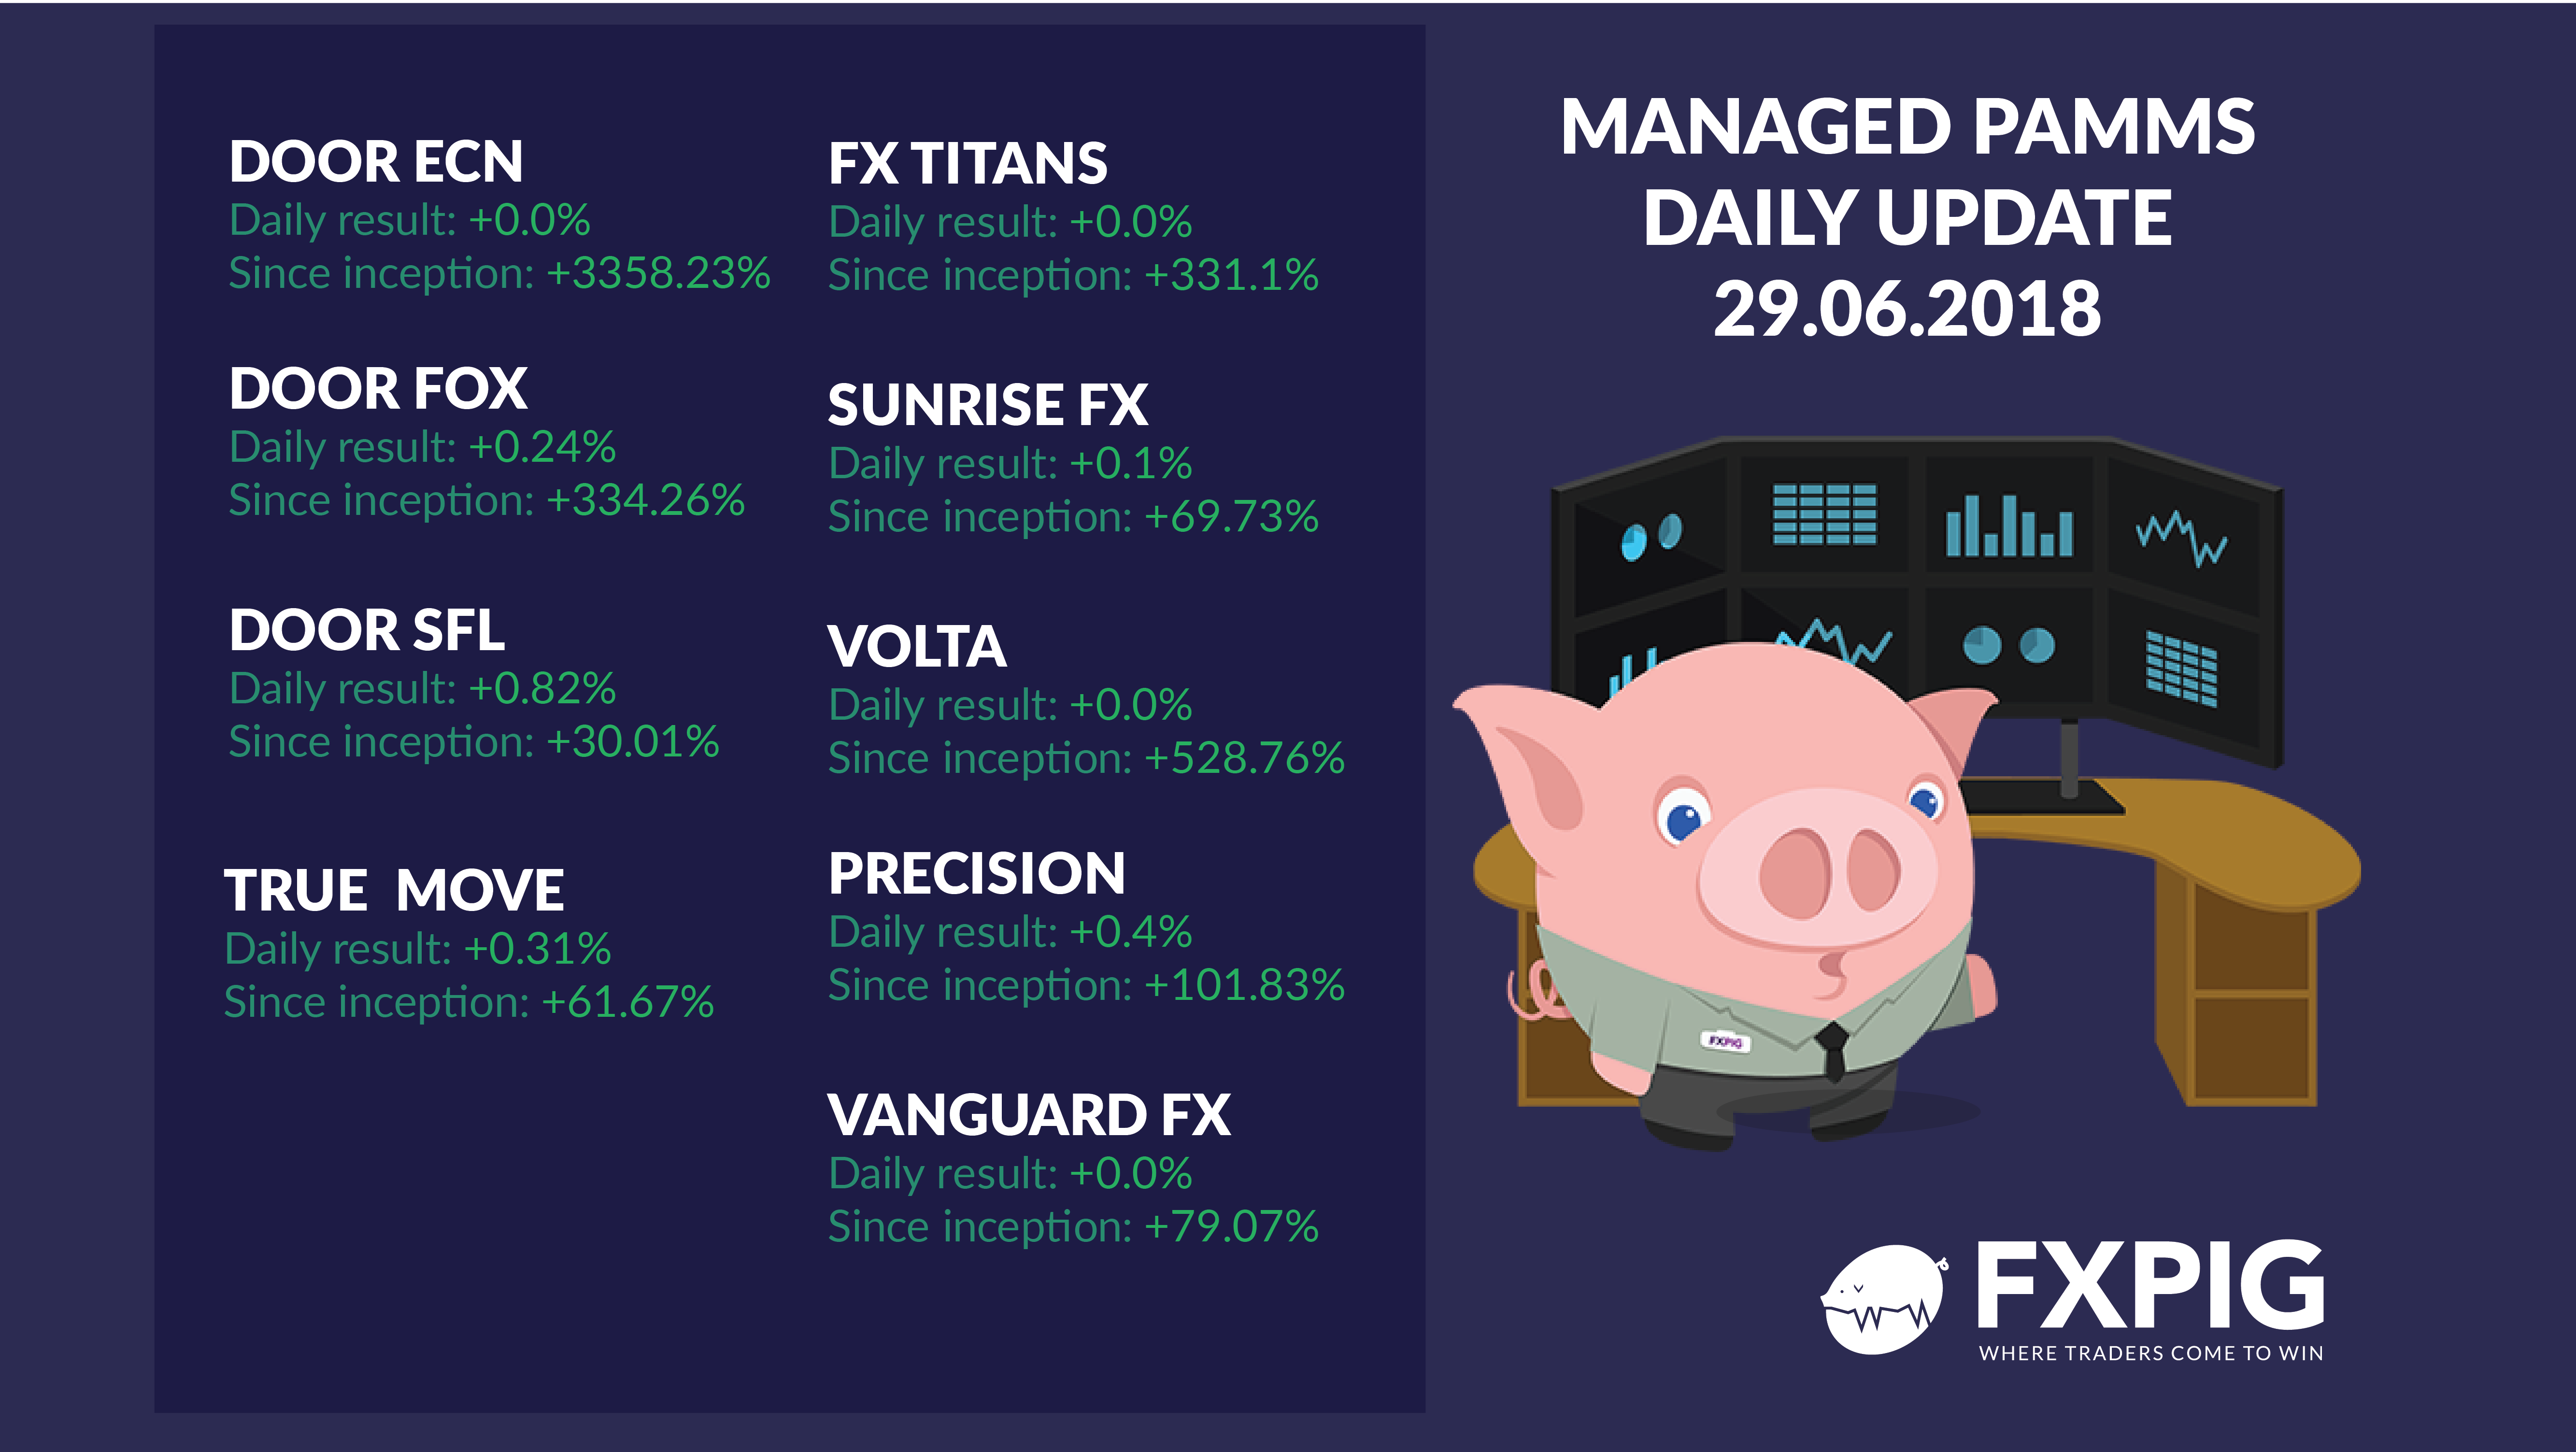 FOREX_Daily-managed-accounts-2906_FXPIG